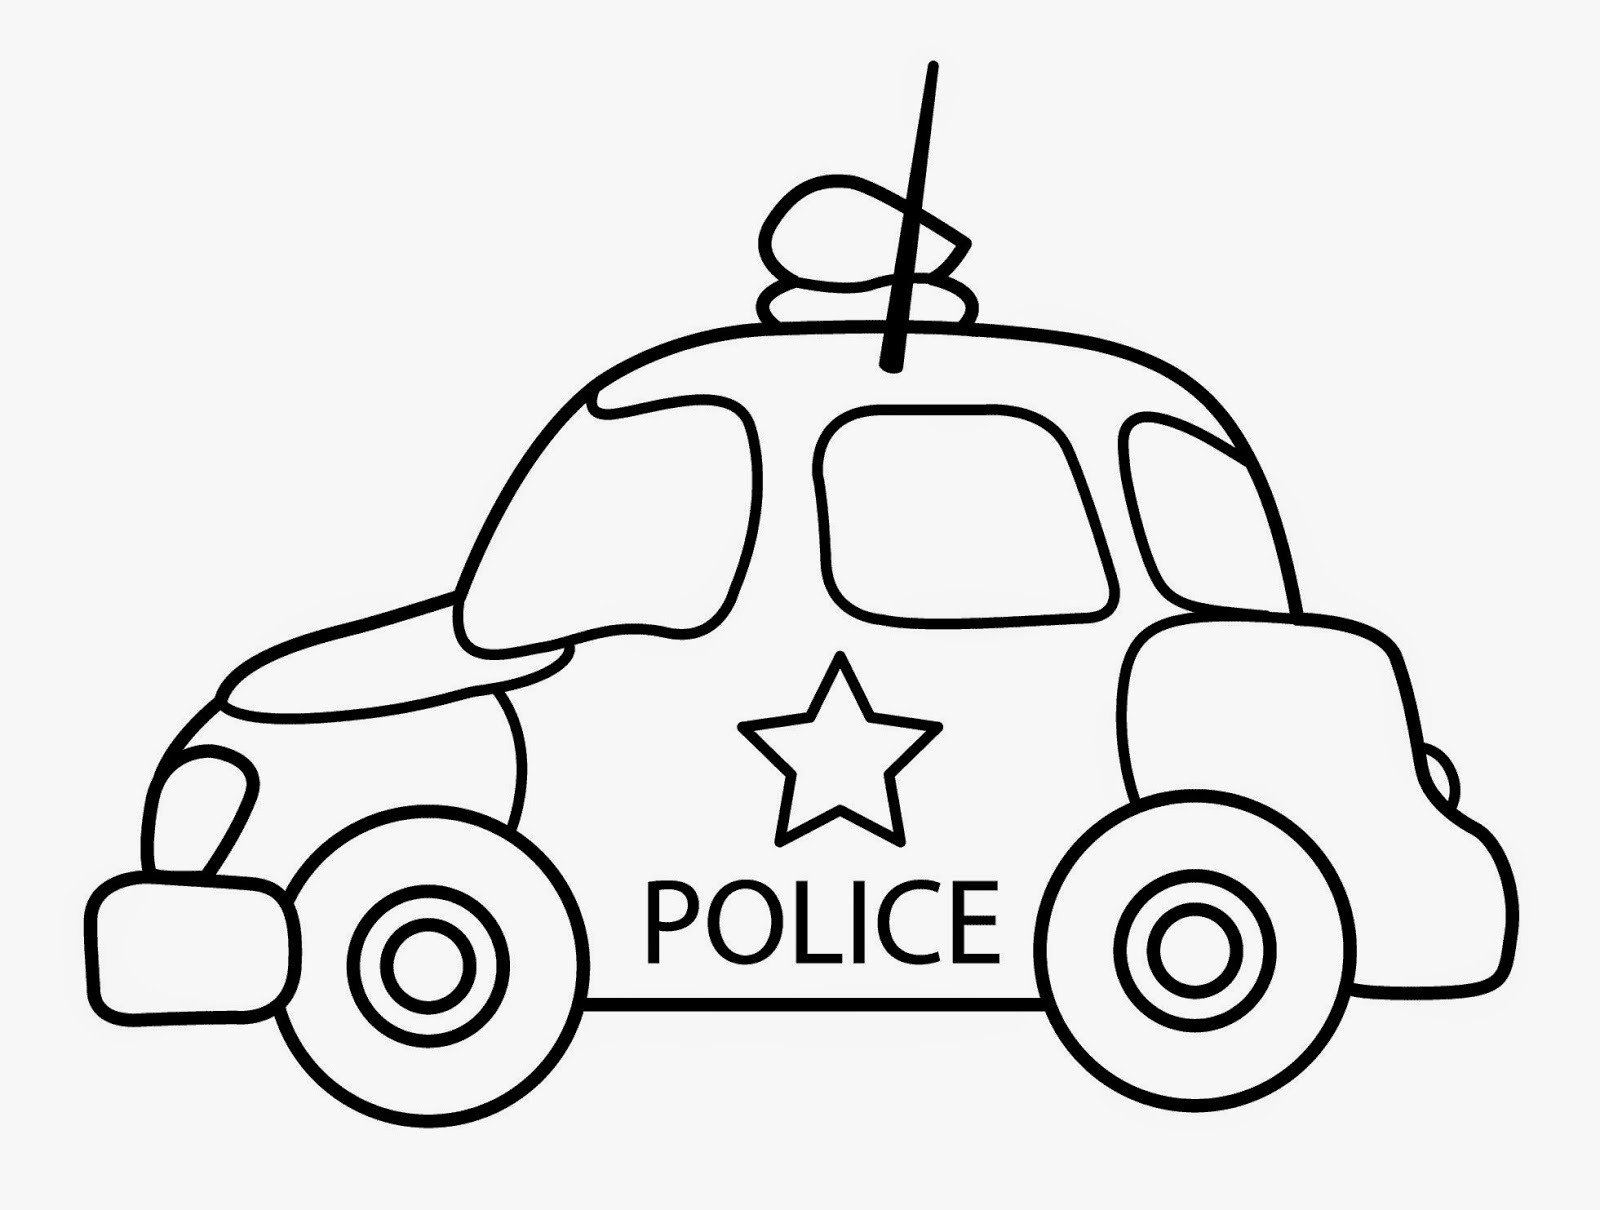 560 Top Police Car Coloring Pages Toddlers , Free HD Download